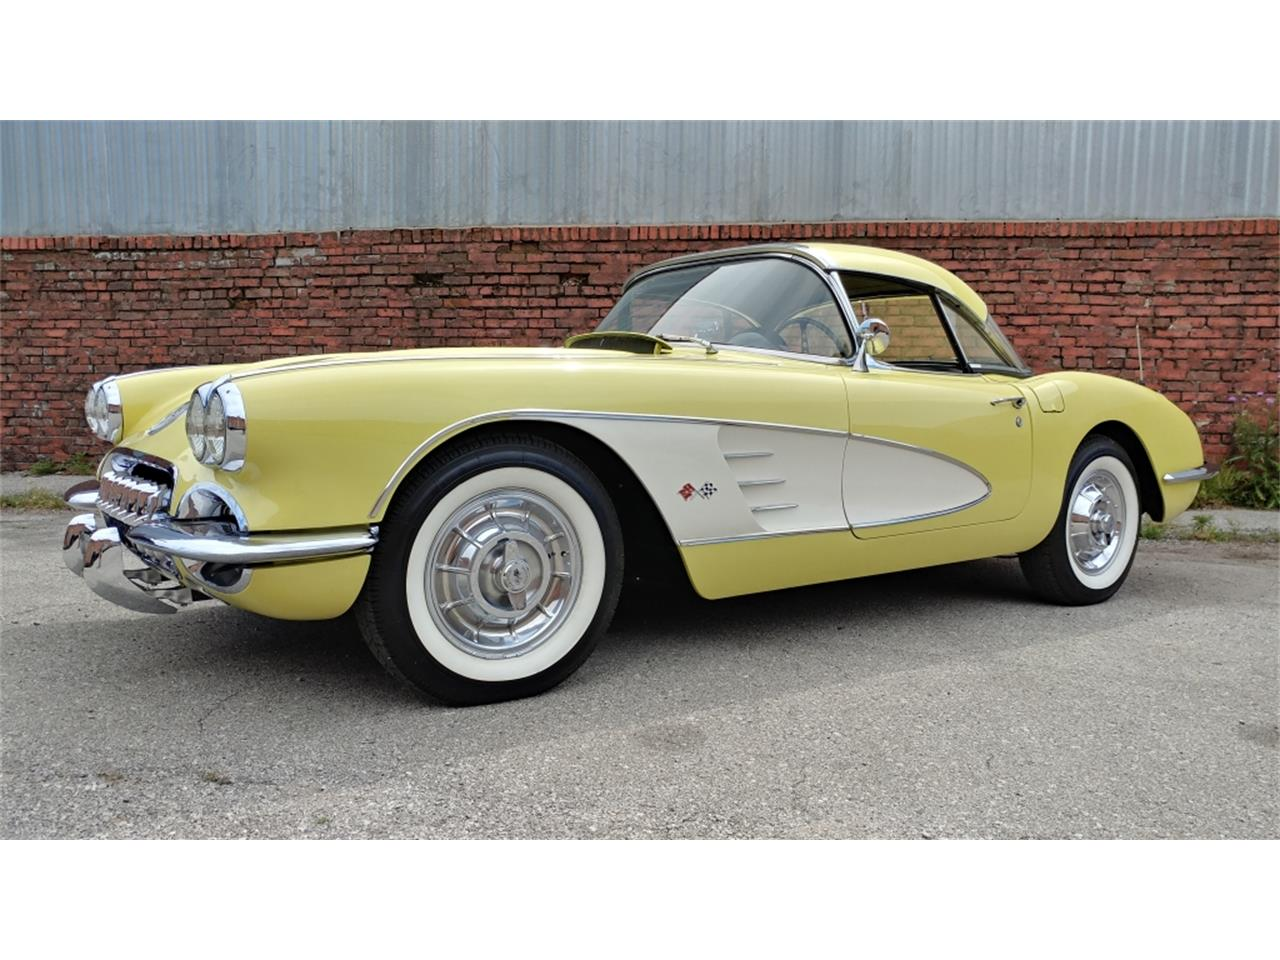 Large Picture of Classic 1958 Chevrolet Corvette located in Missouri - $75,999.00 Offered by Vintage Vettes, LLC - MO26